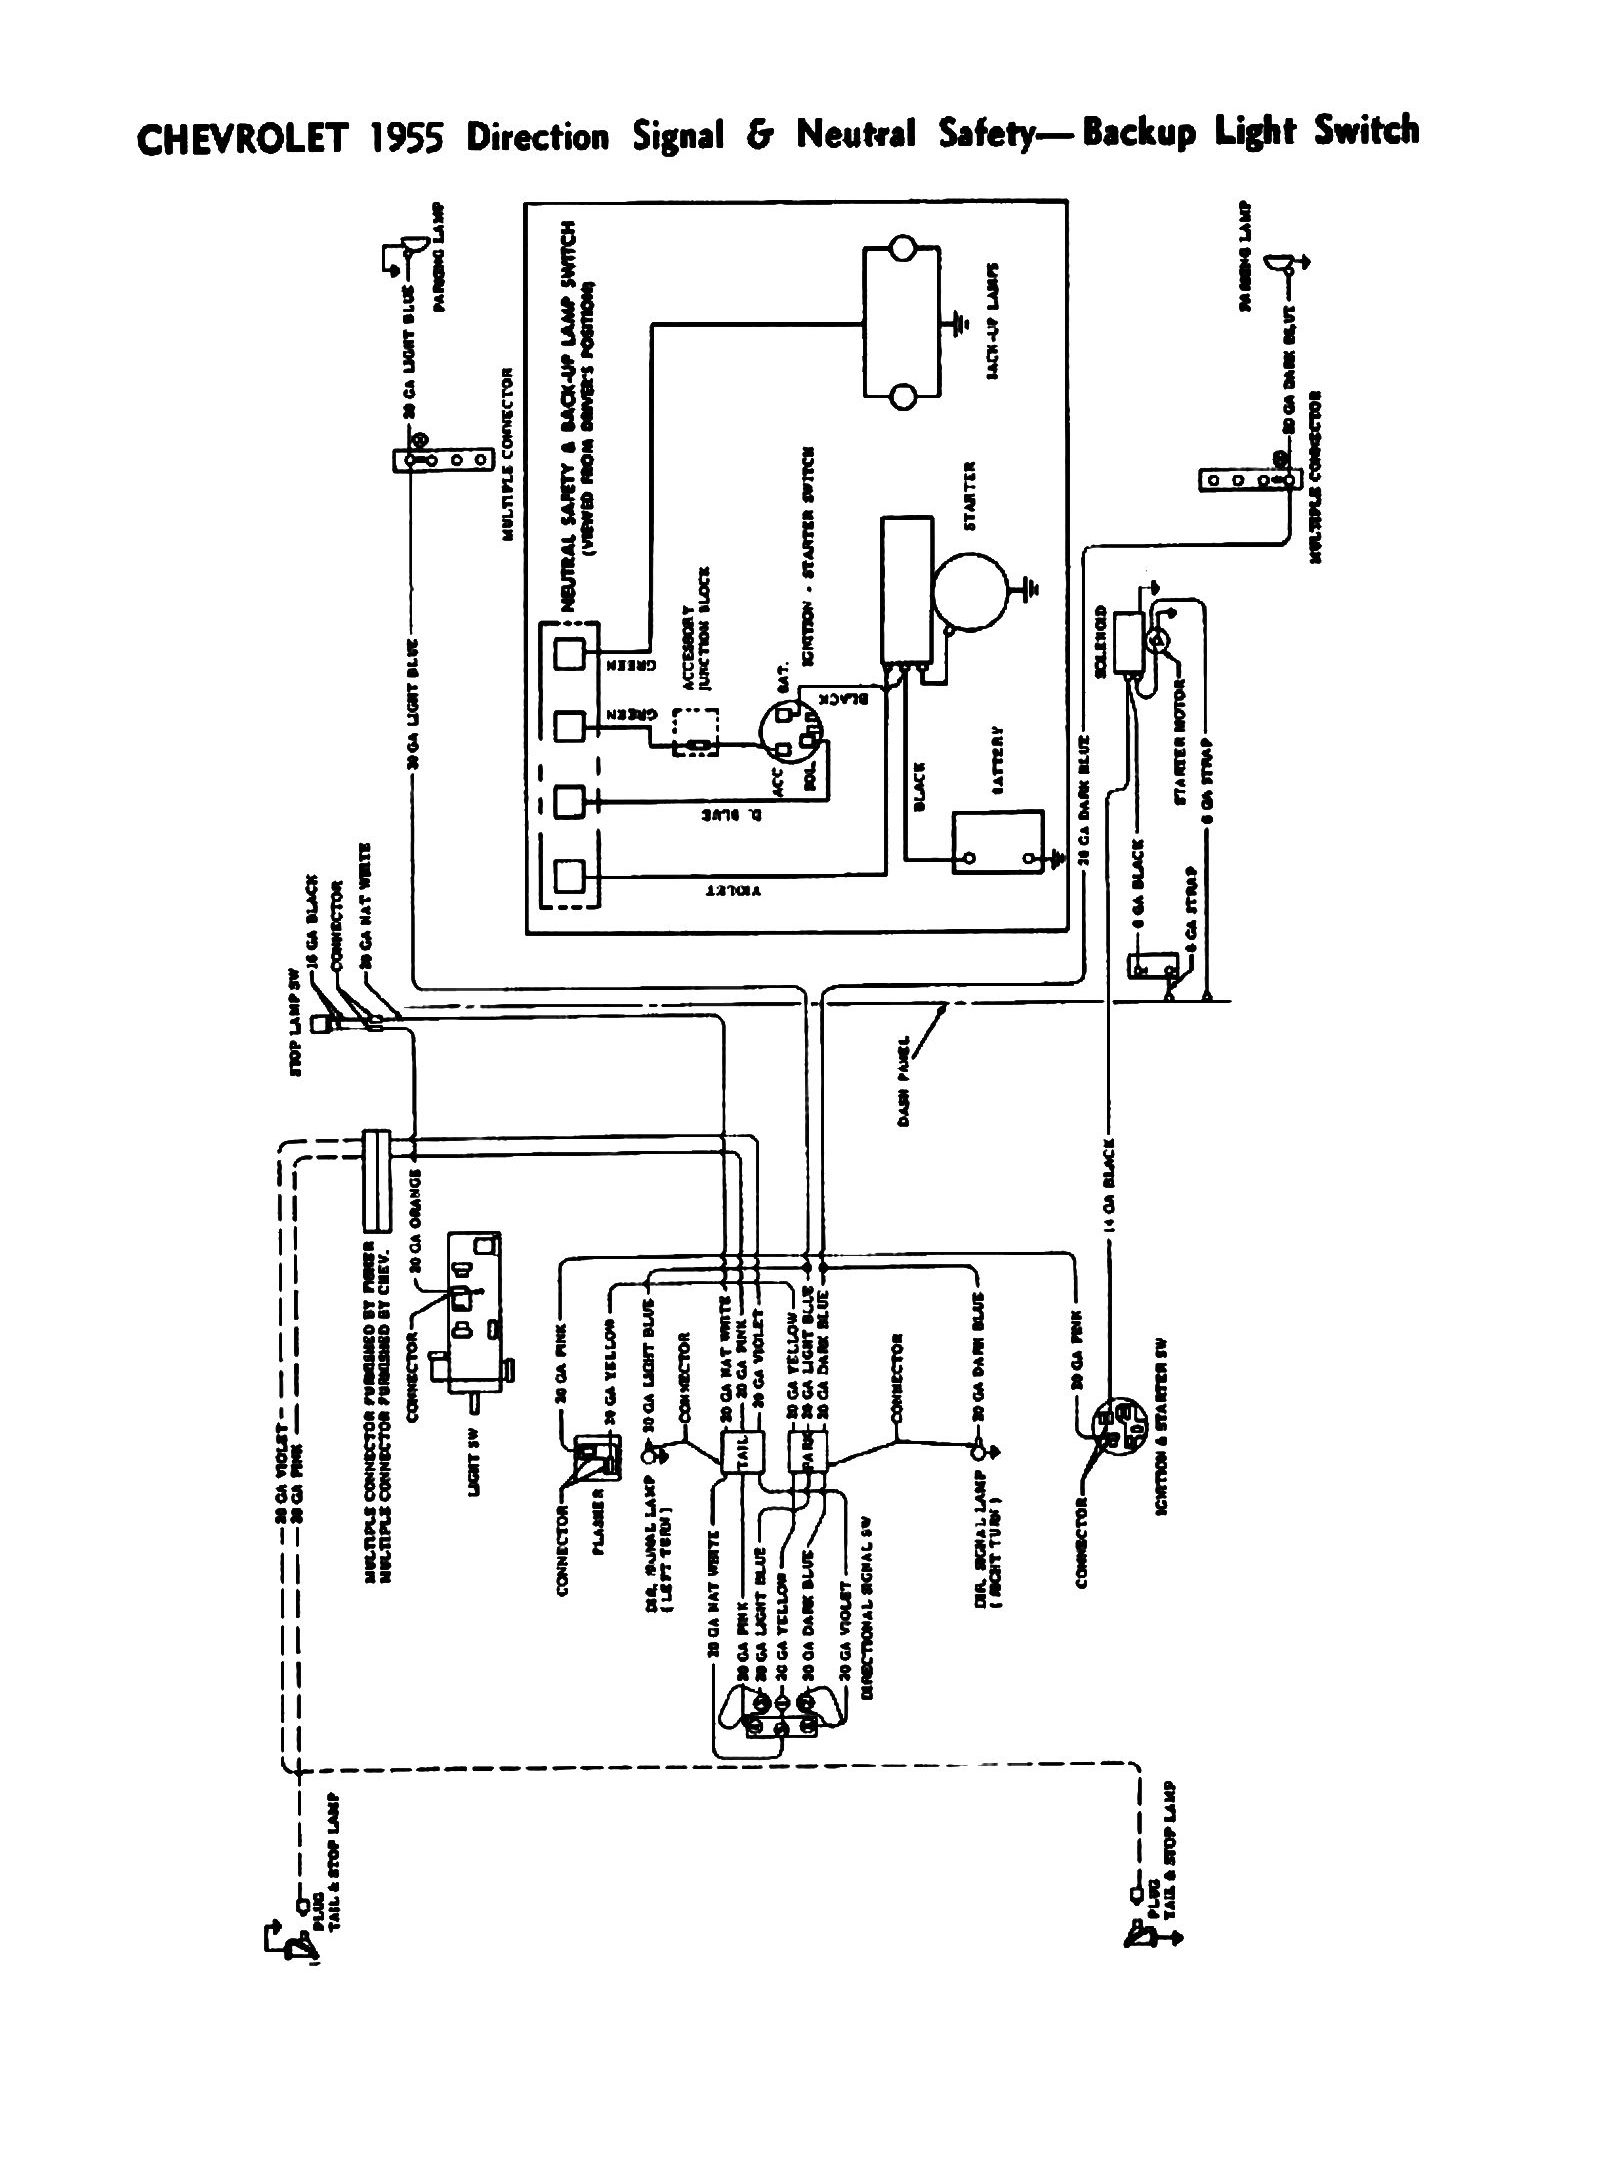 hight resolution of 55 chevy color wiring diagram get free image about 89 chevy turn signal wiring 89 chevy